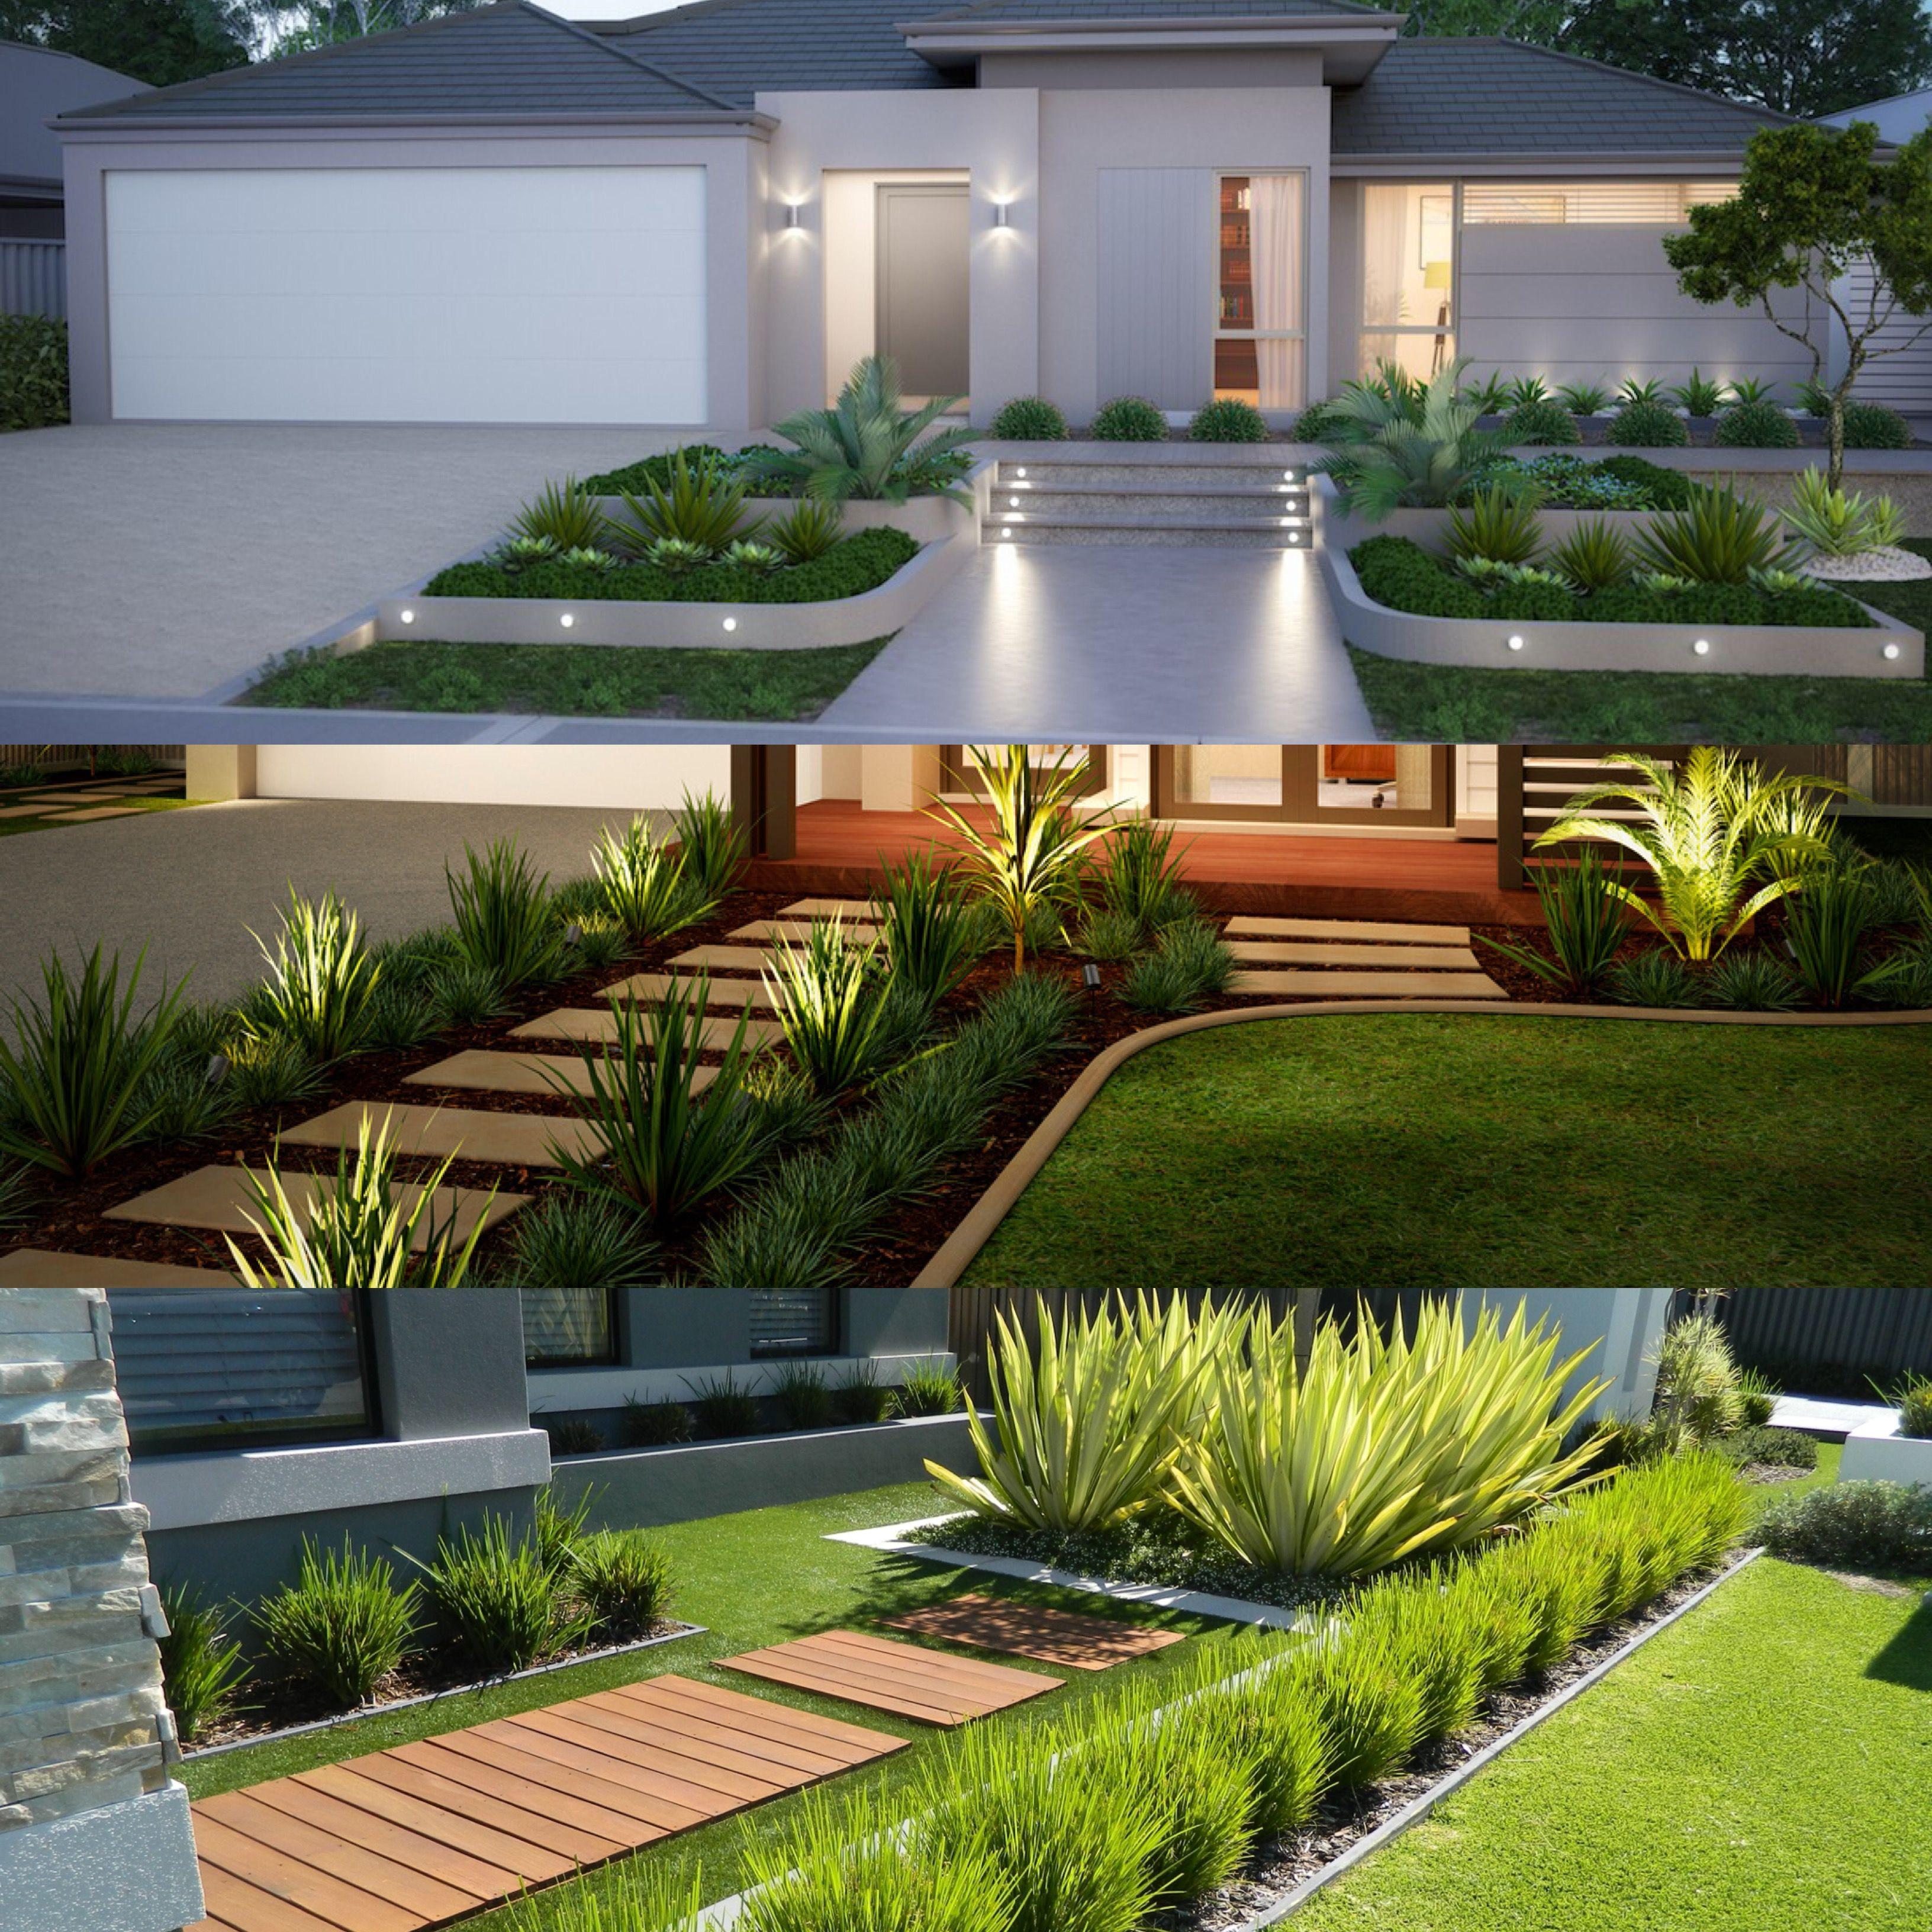 Pin By Choopex Dez On My Home Front House Landscaping Backyard Landscaping Designs Outdoor Gardens Design Modern front yard landscaping ideas australia